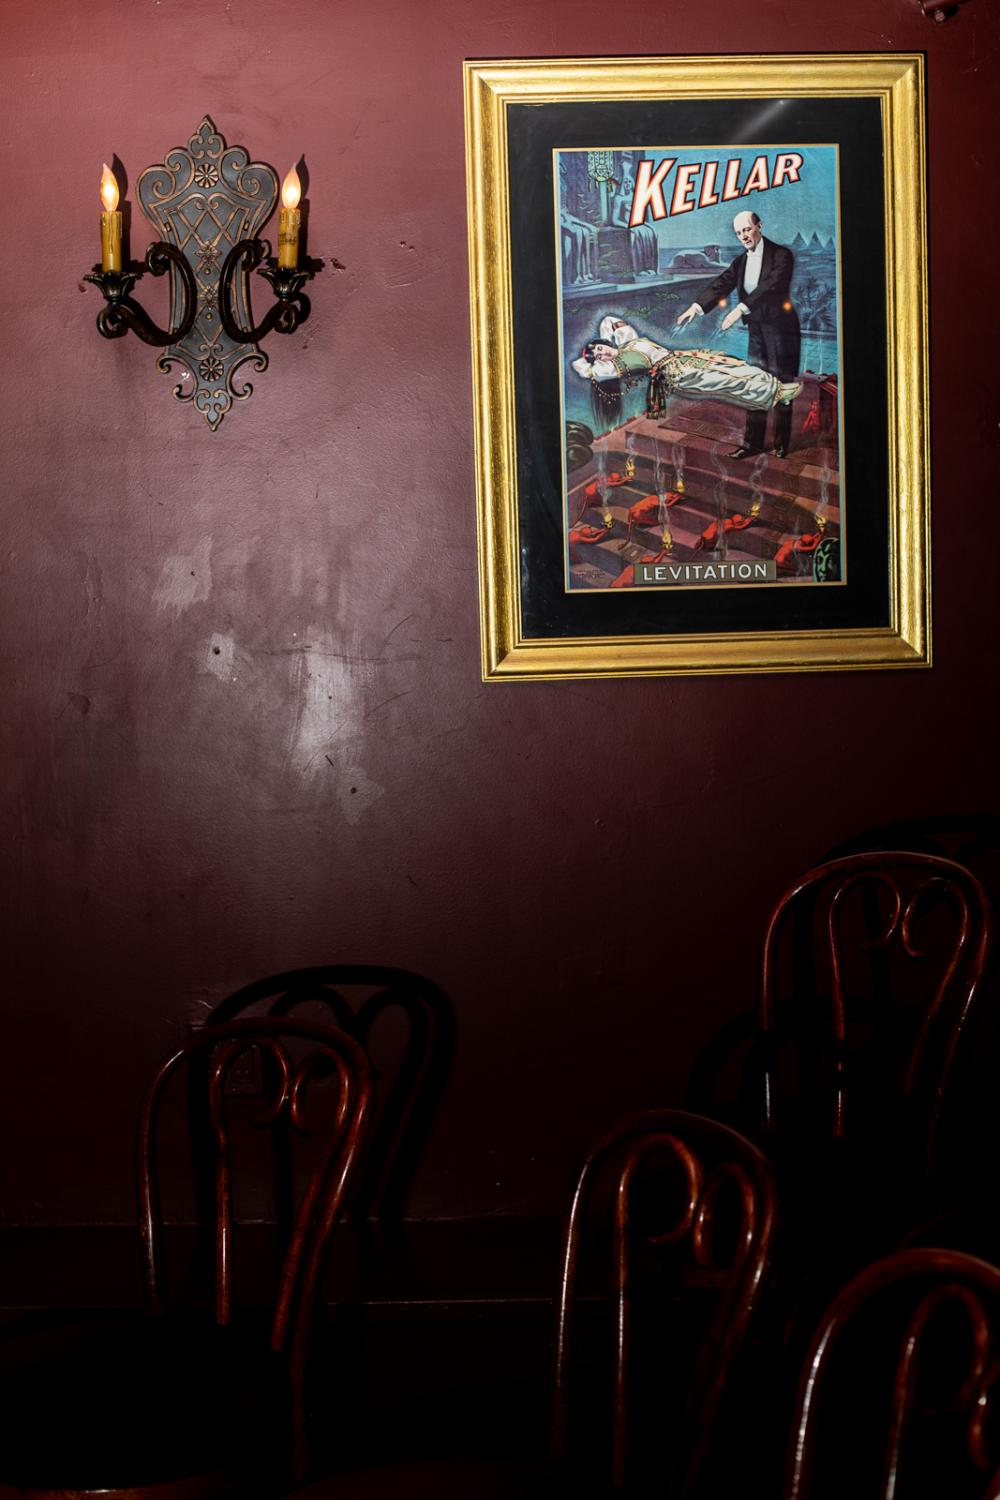 A poster of a levitation trick performed by the famous magician Harry Kellar and his female assistant hangs on the wall of the Magic Castle in Los Angeles.